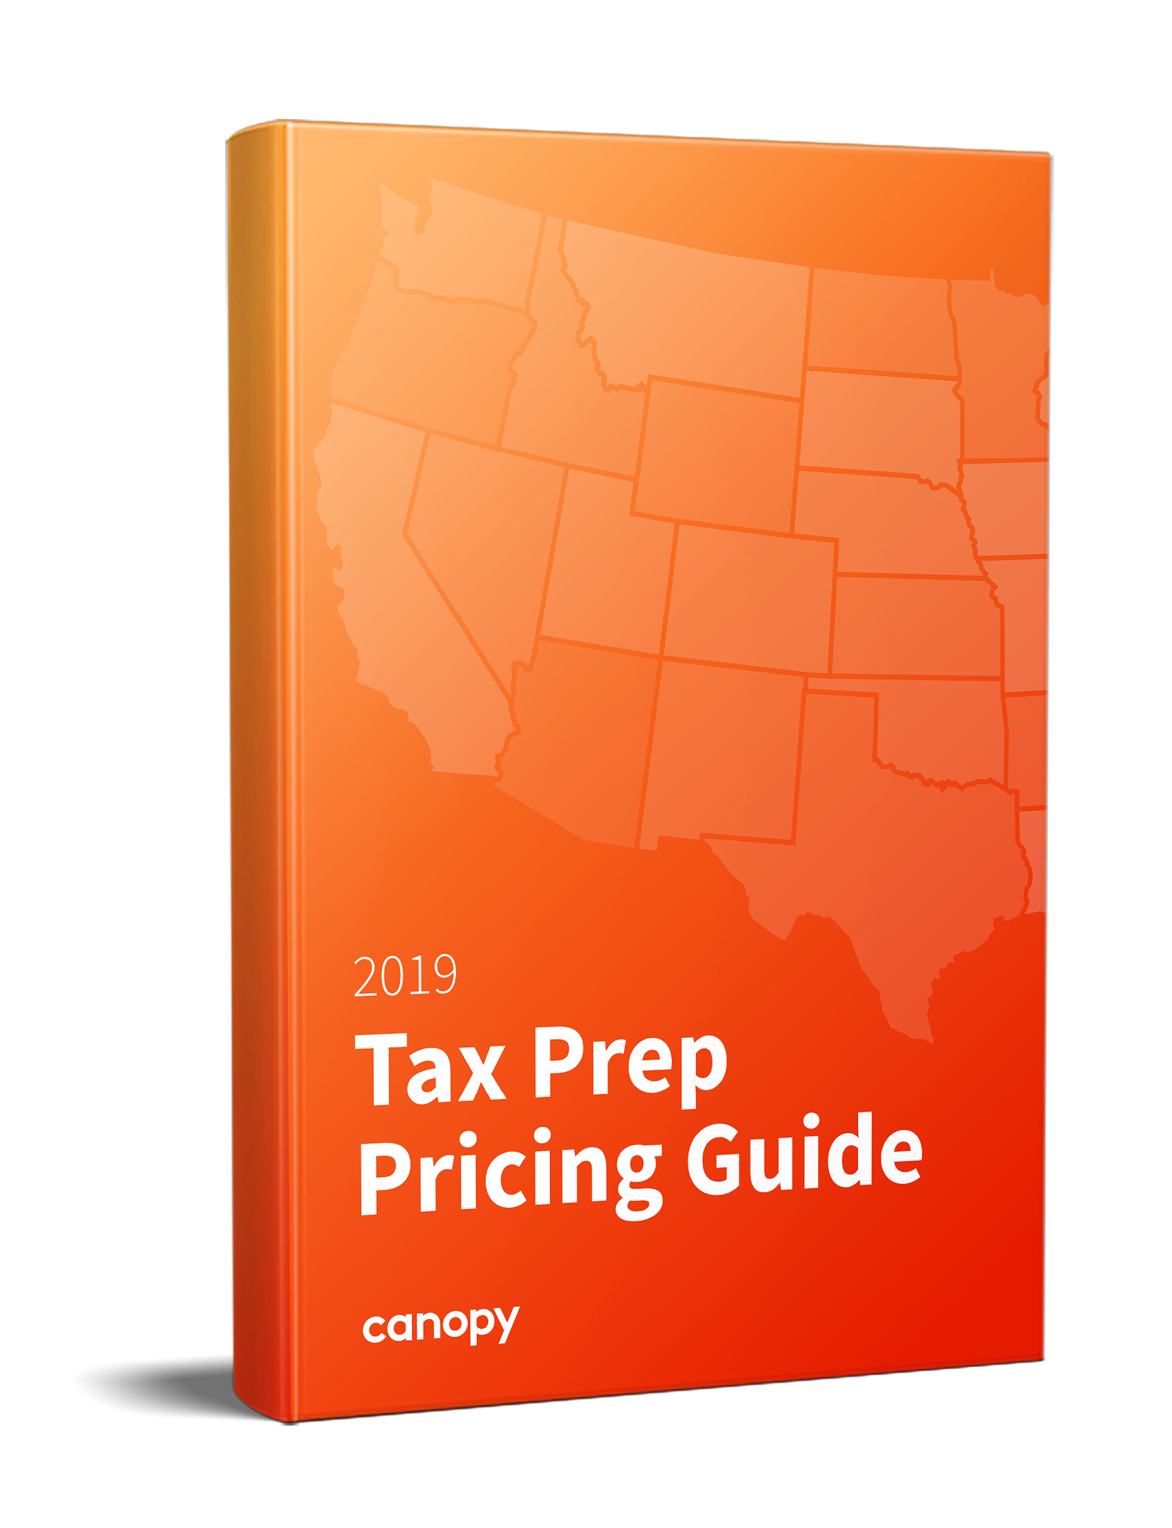 Tax Prep Pricing Guide 2019 Small image